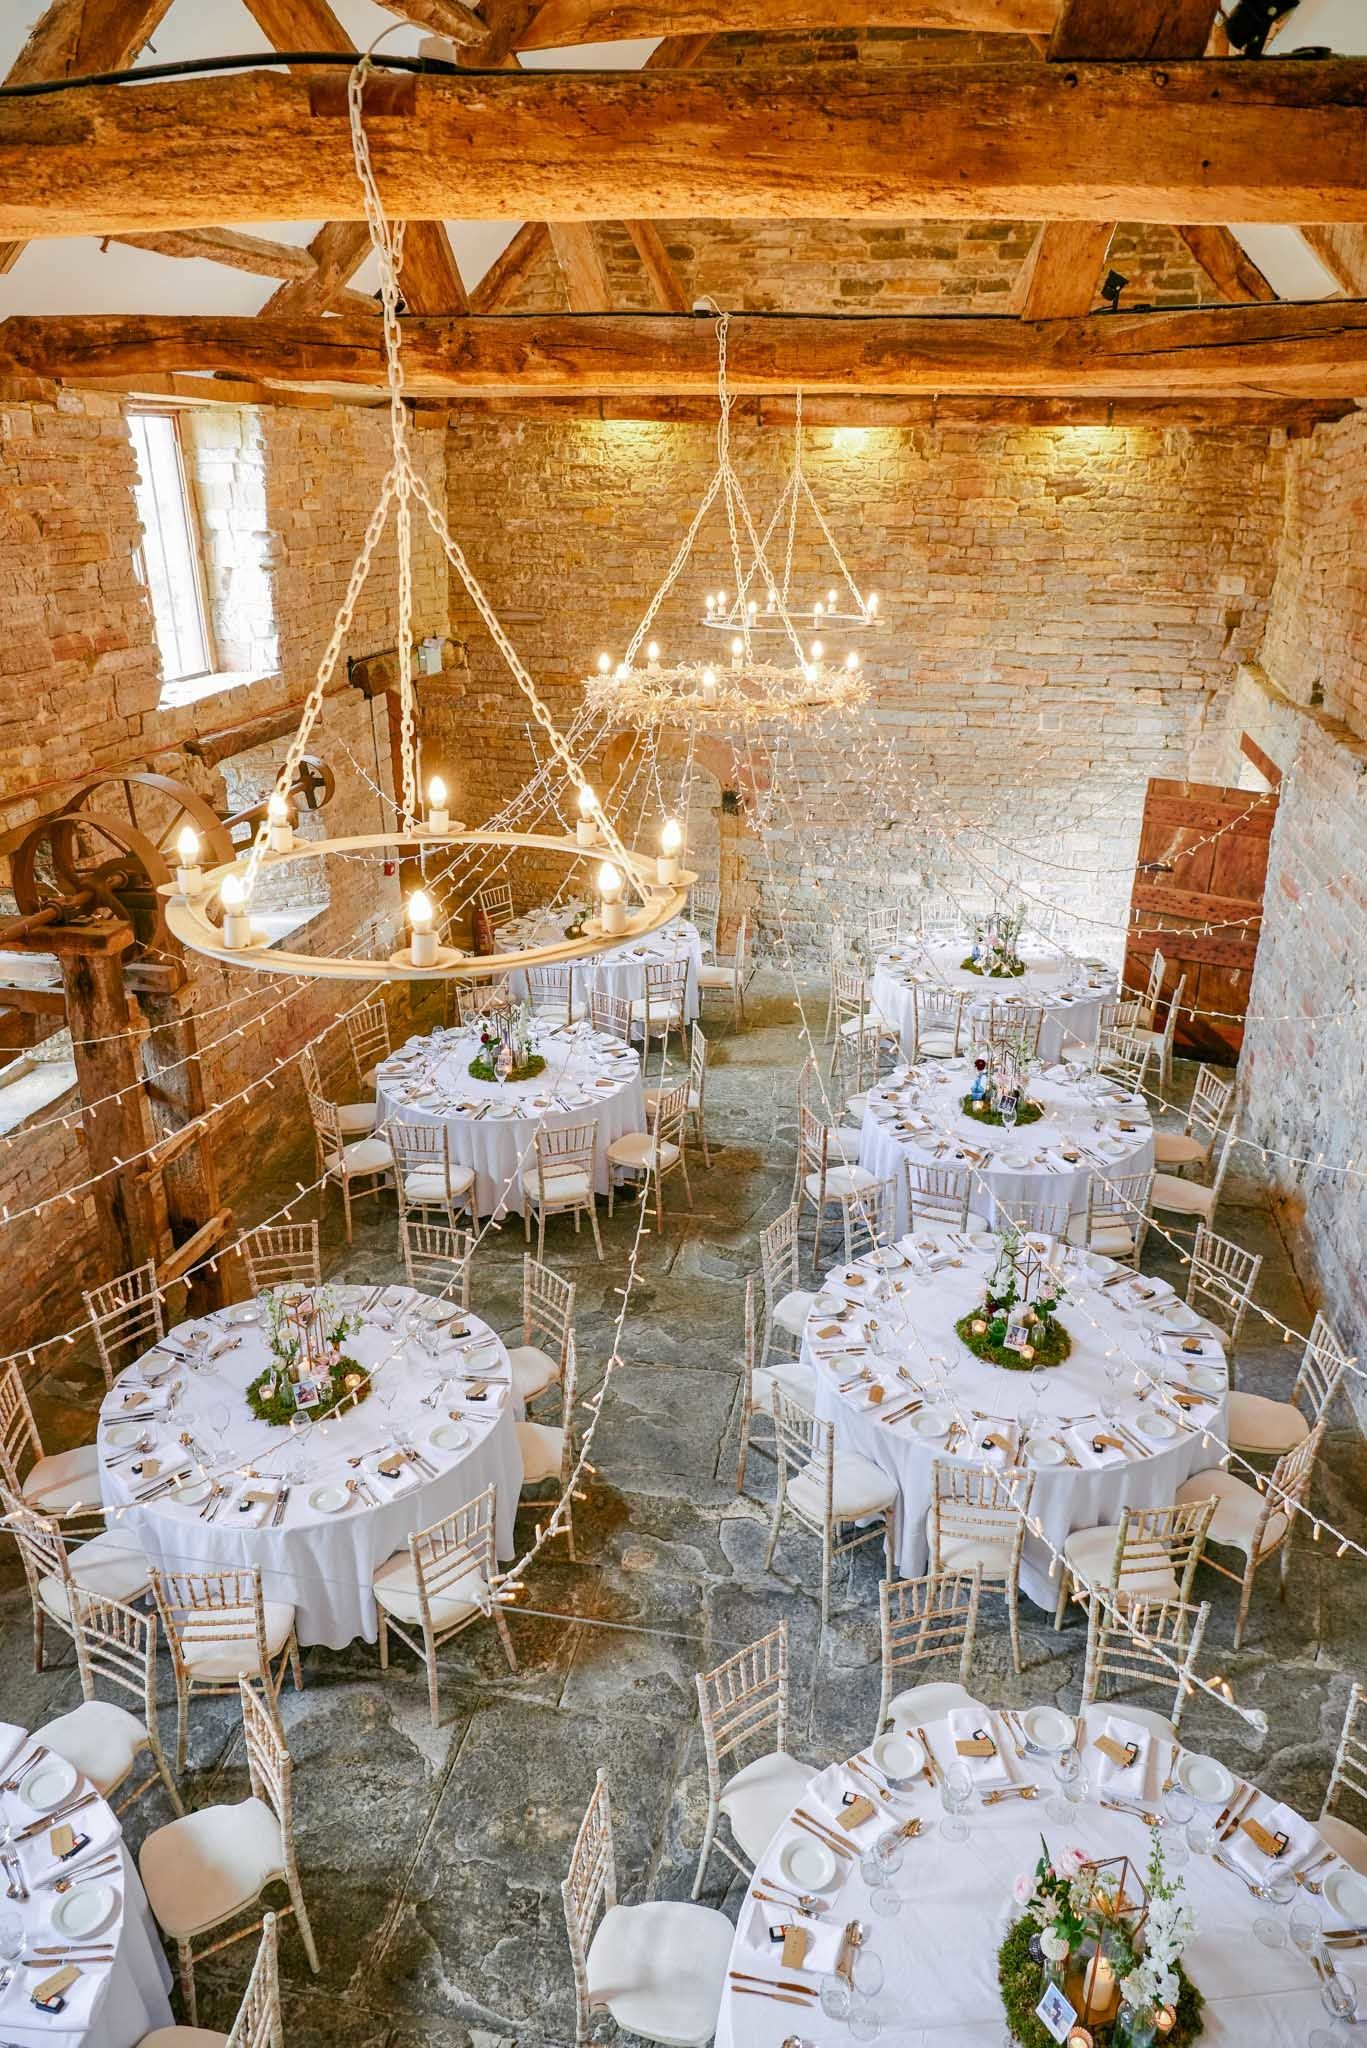 What Stunning Wedding Reception The Almonry Barn In Somerset Is One Of The Oldest Stone B Round Wedding Tables Wedding Venues Somerset Barn Wedding Reception